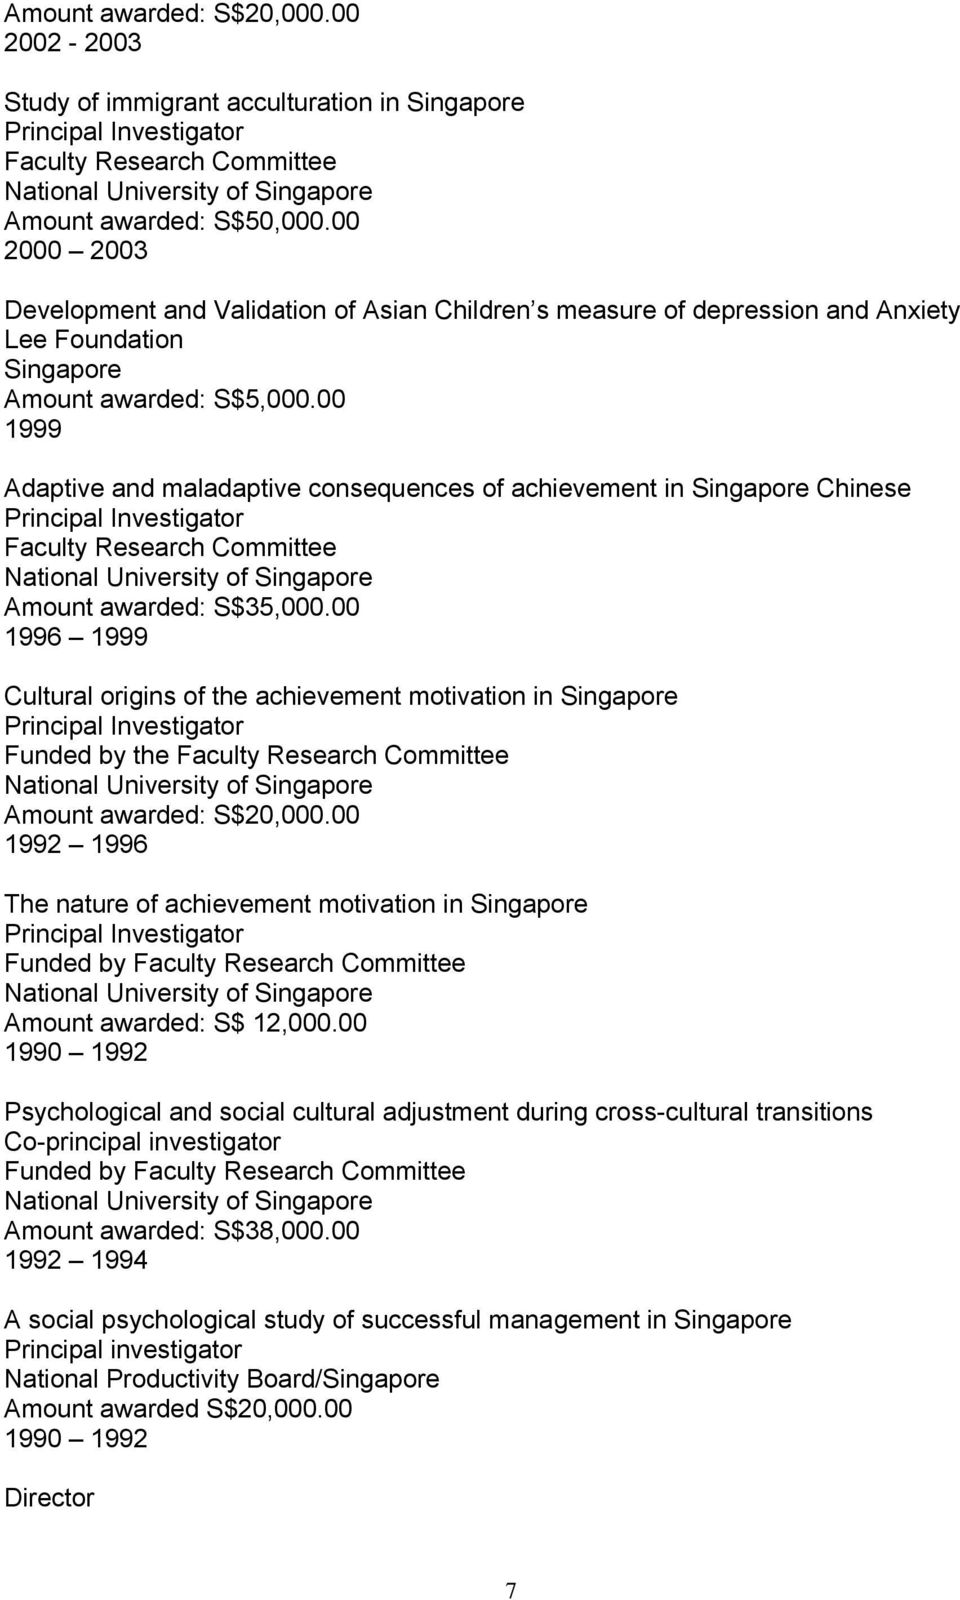 00 1999 Adaptive and maladaptive consequences of achievement in Singapore Chinese Principal Investigator Faculty Research Committee National University of Singapore Amount awarded: S$35,000.